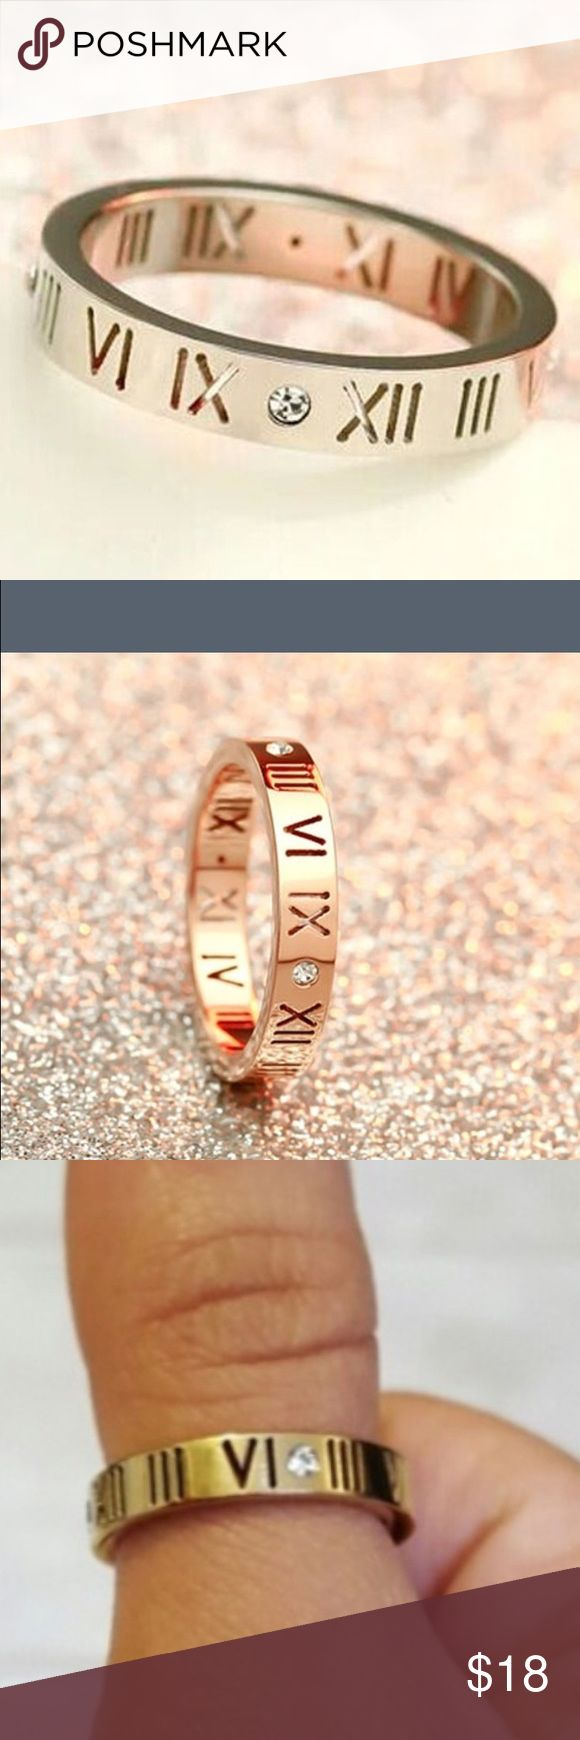 Stainless Steel Rose Gold tone ring/band Hollow Roman Numeral Stainless CZ crystal 4MM Band. Jewelry Rings